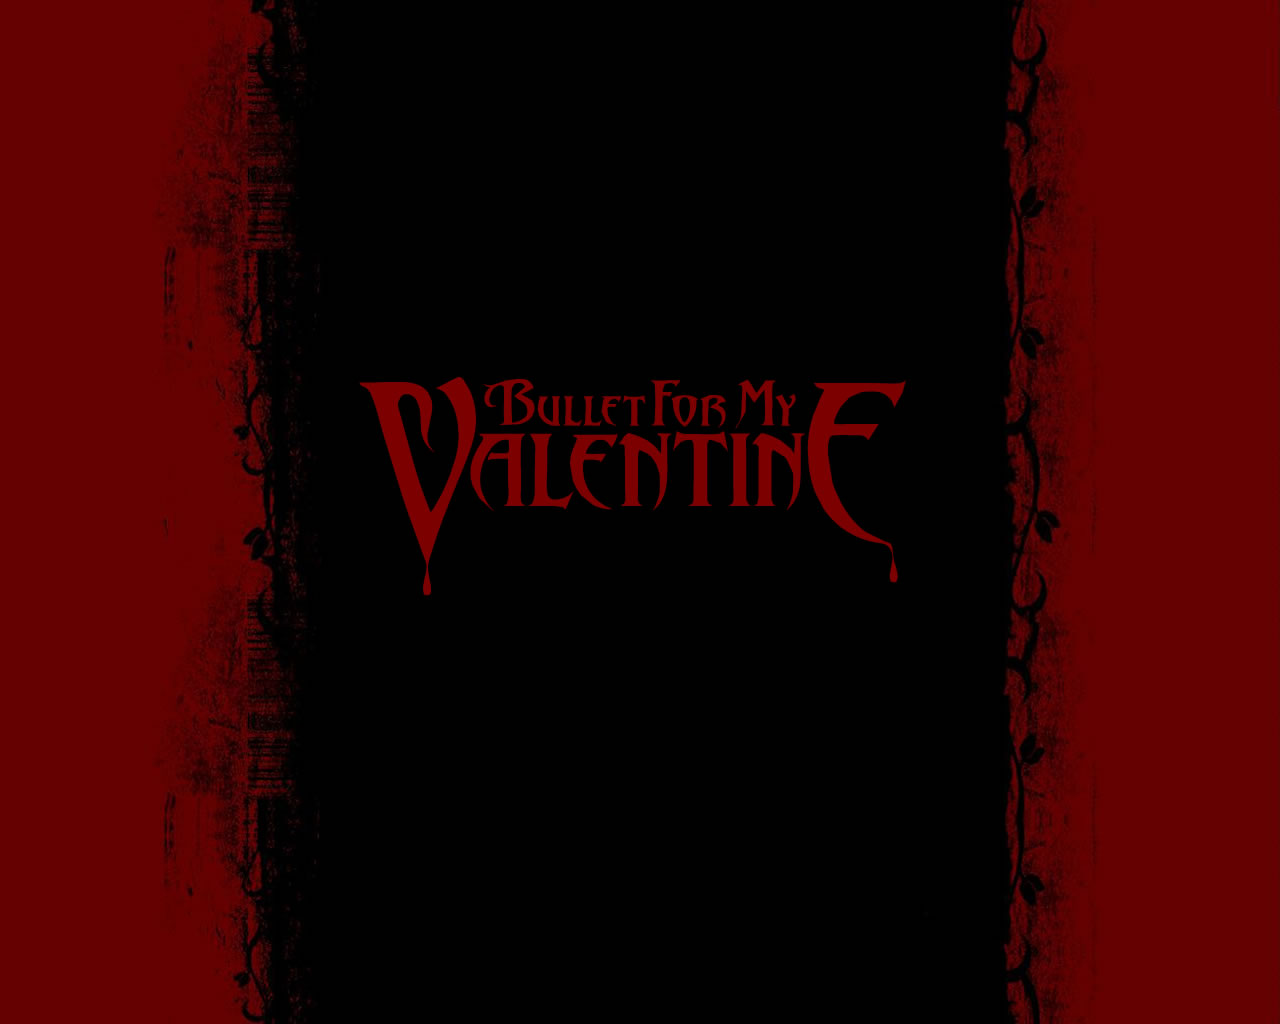 Bullet For My Valentine By Twistyd On Deviantart